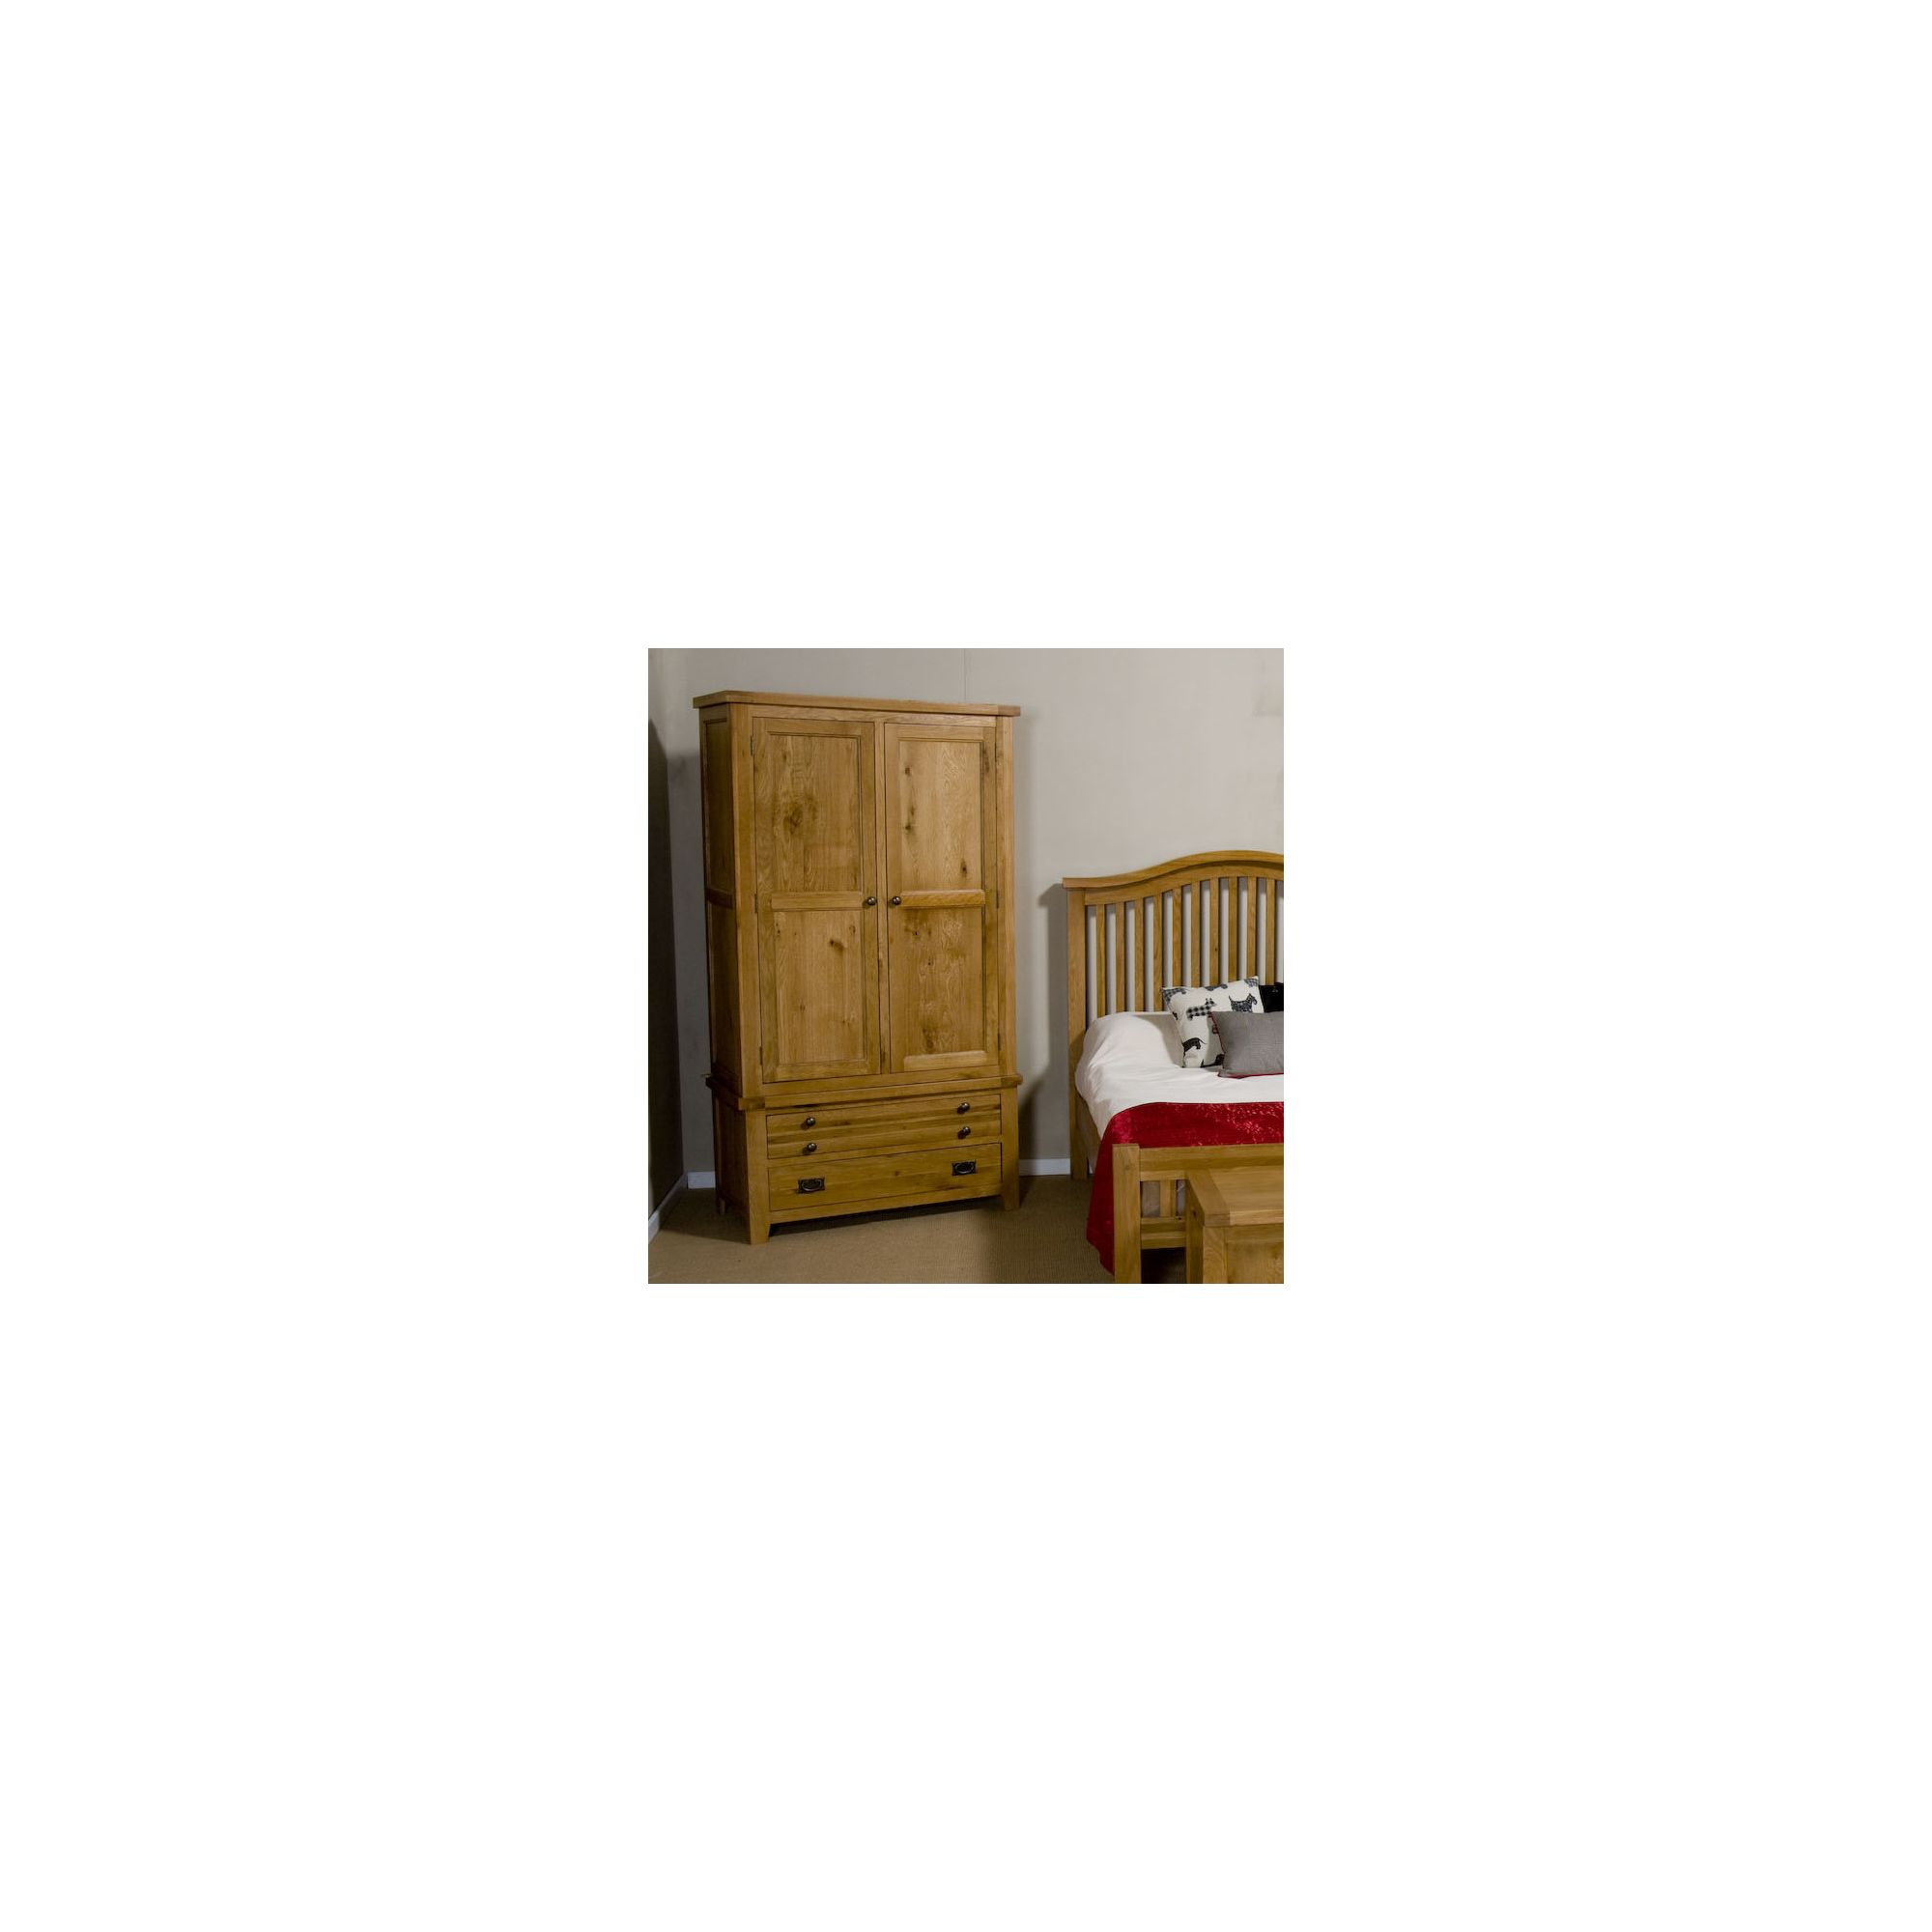 Elements Ludmilla Gents Two Door and Two Drawer Wardrobe in Warm Lacquer at Tesco Direct